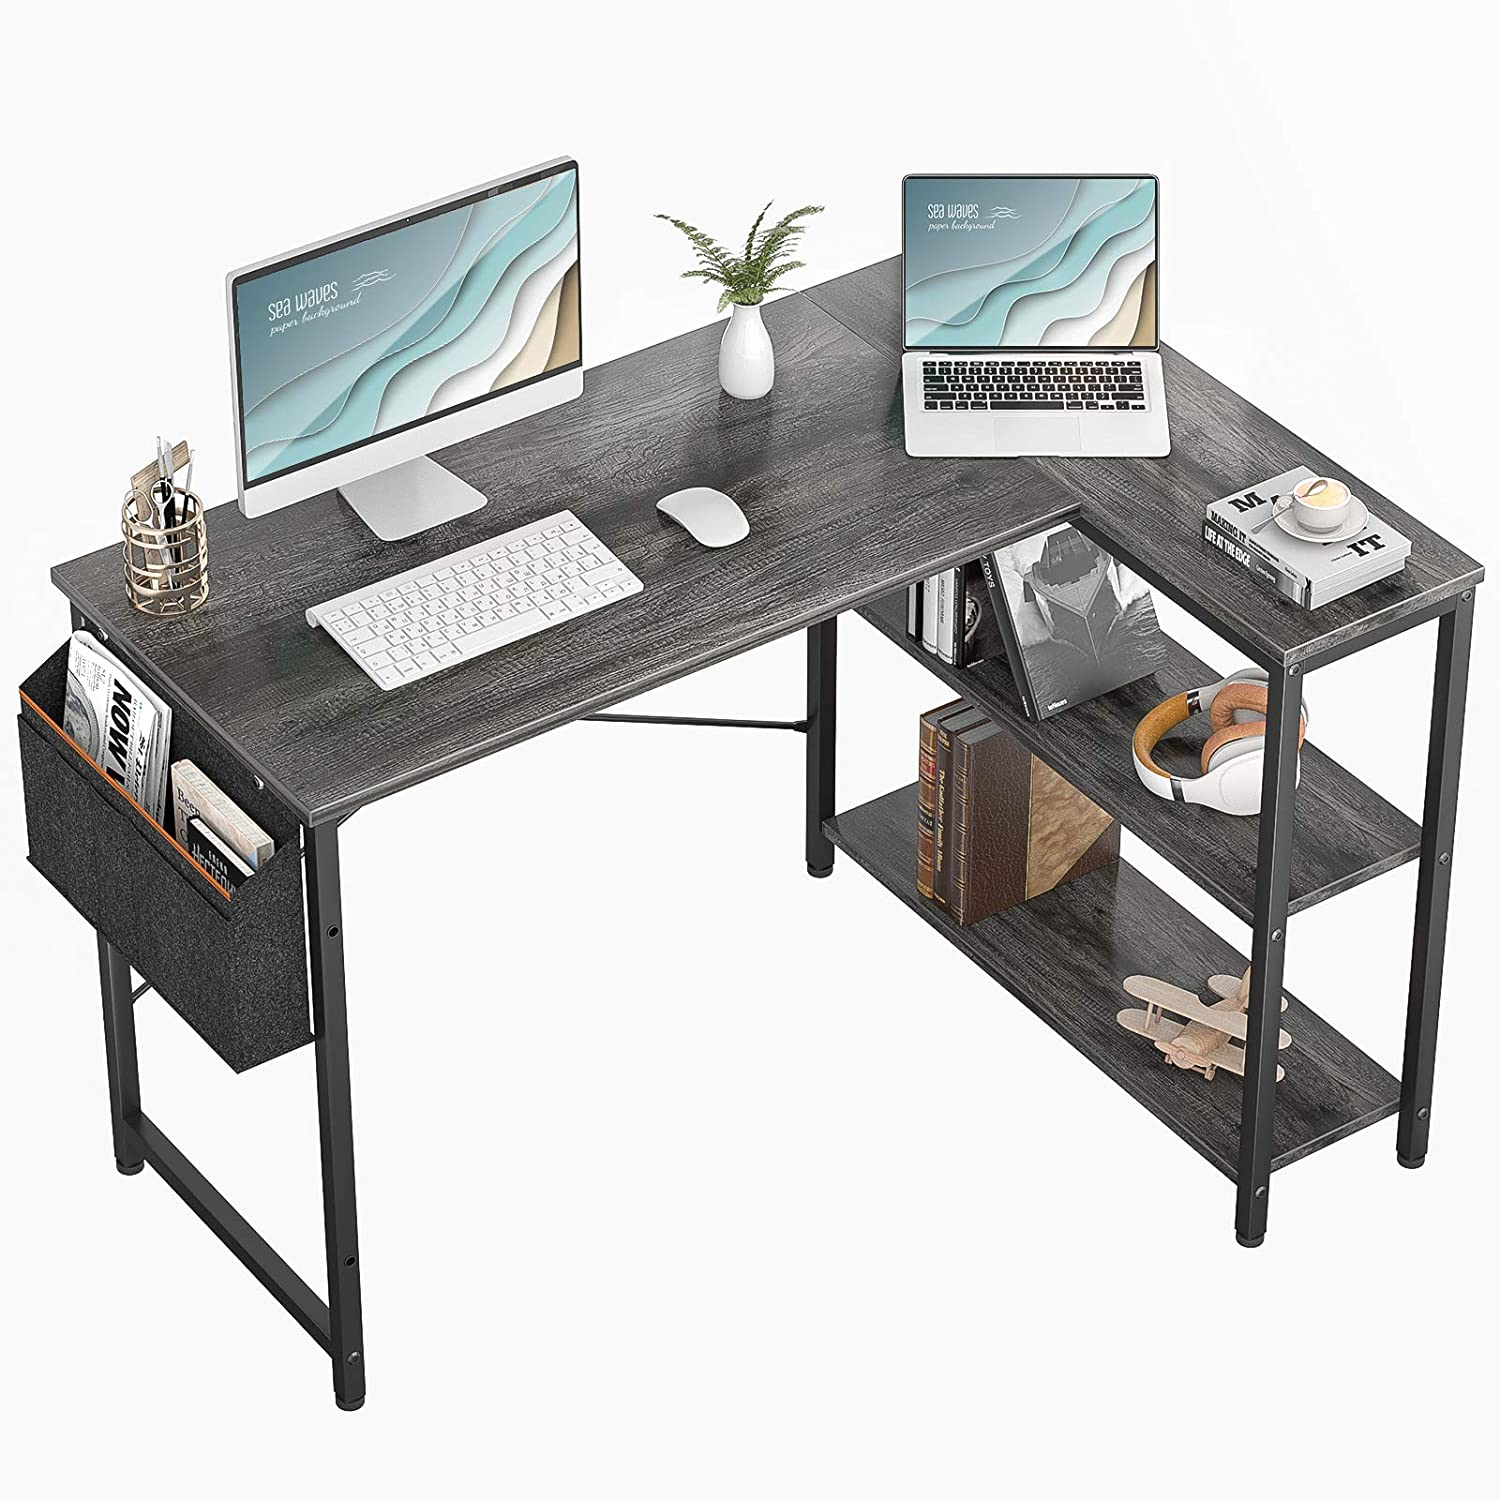 Small L Shaped Computer Desk, Besiture 47 Inch L-ShapedCornerDesk with Reversible Storage Shelves for Home Office Workstation, Modern Simple Style Writing Desk Table with Storage Bag(Black Oak)